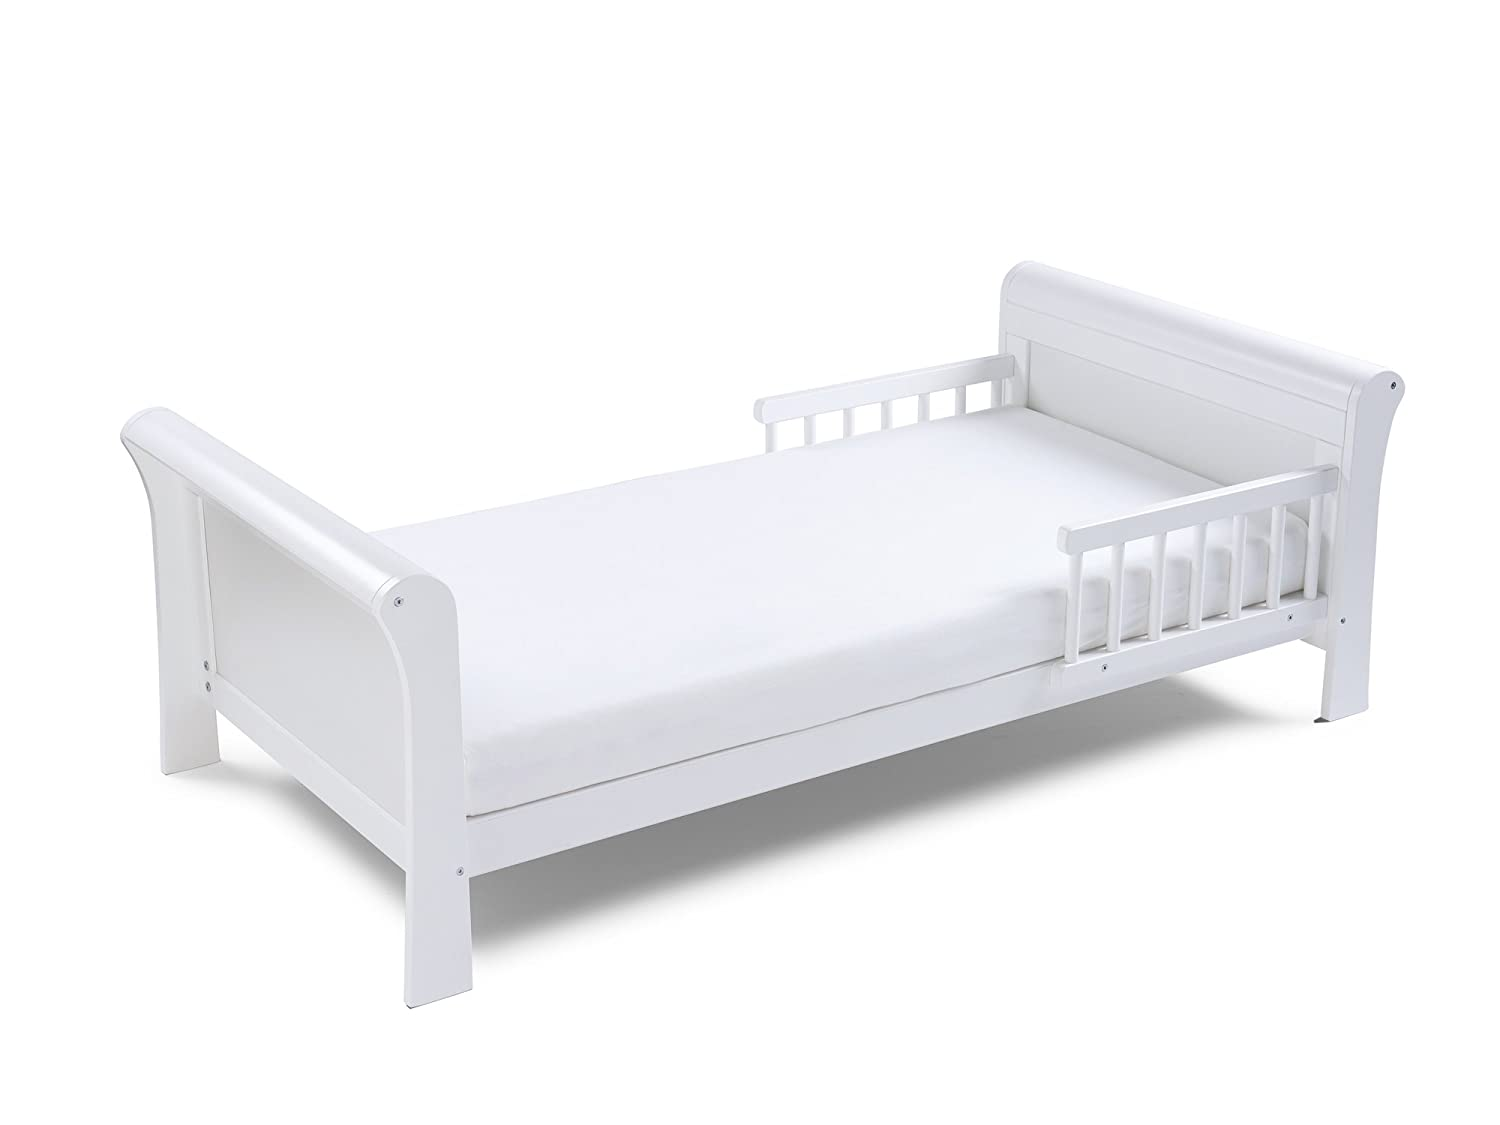 Poppys Playground Grace Sleigh - White Junior Toddler Bed & Safety Foam Mattress Poppy's Playground